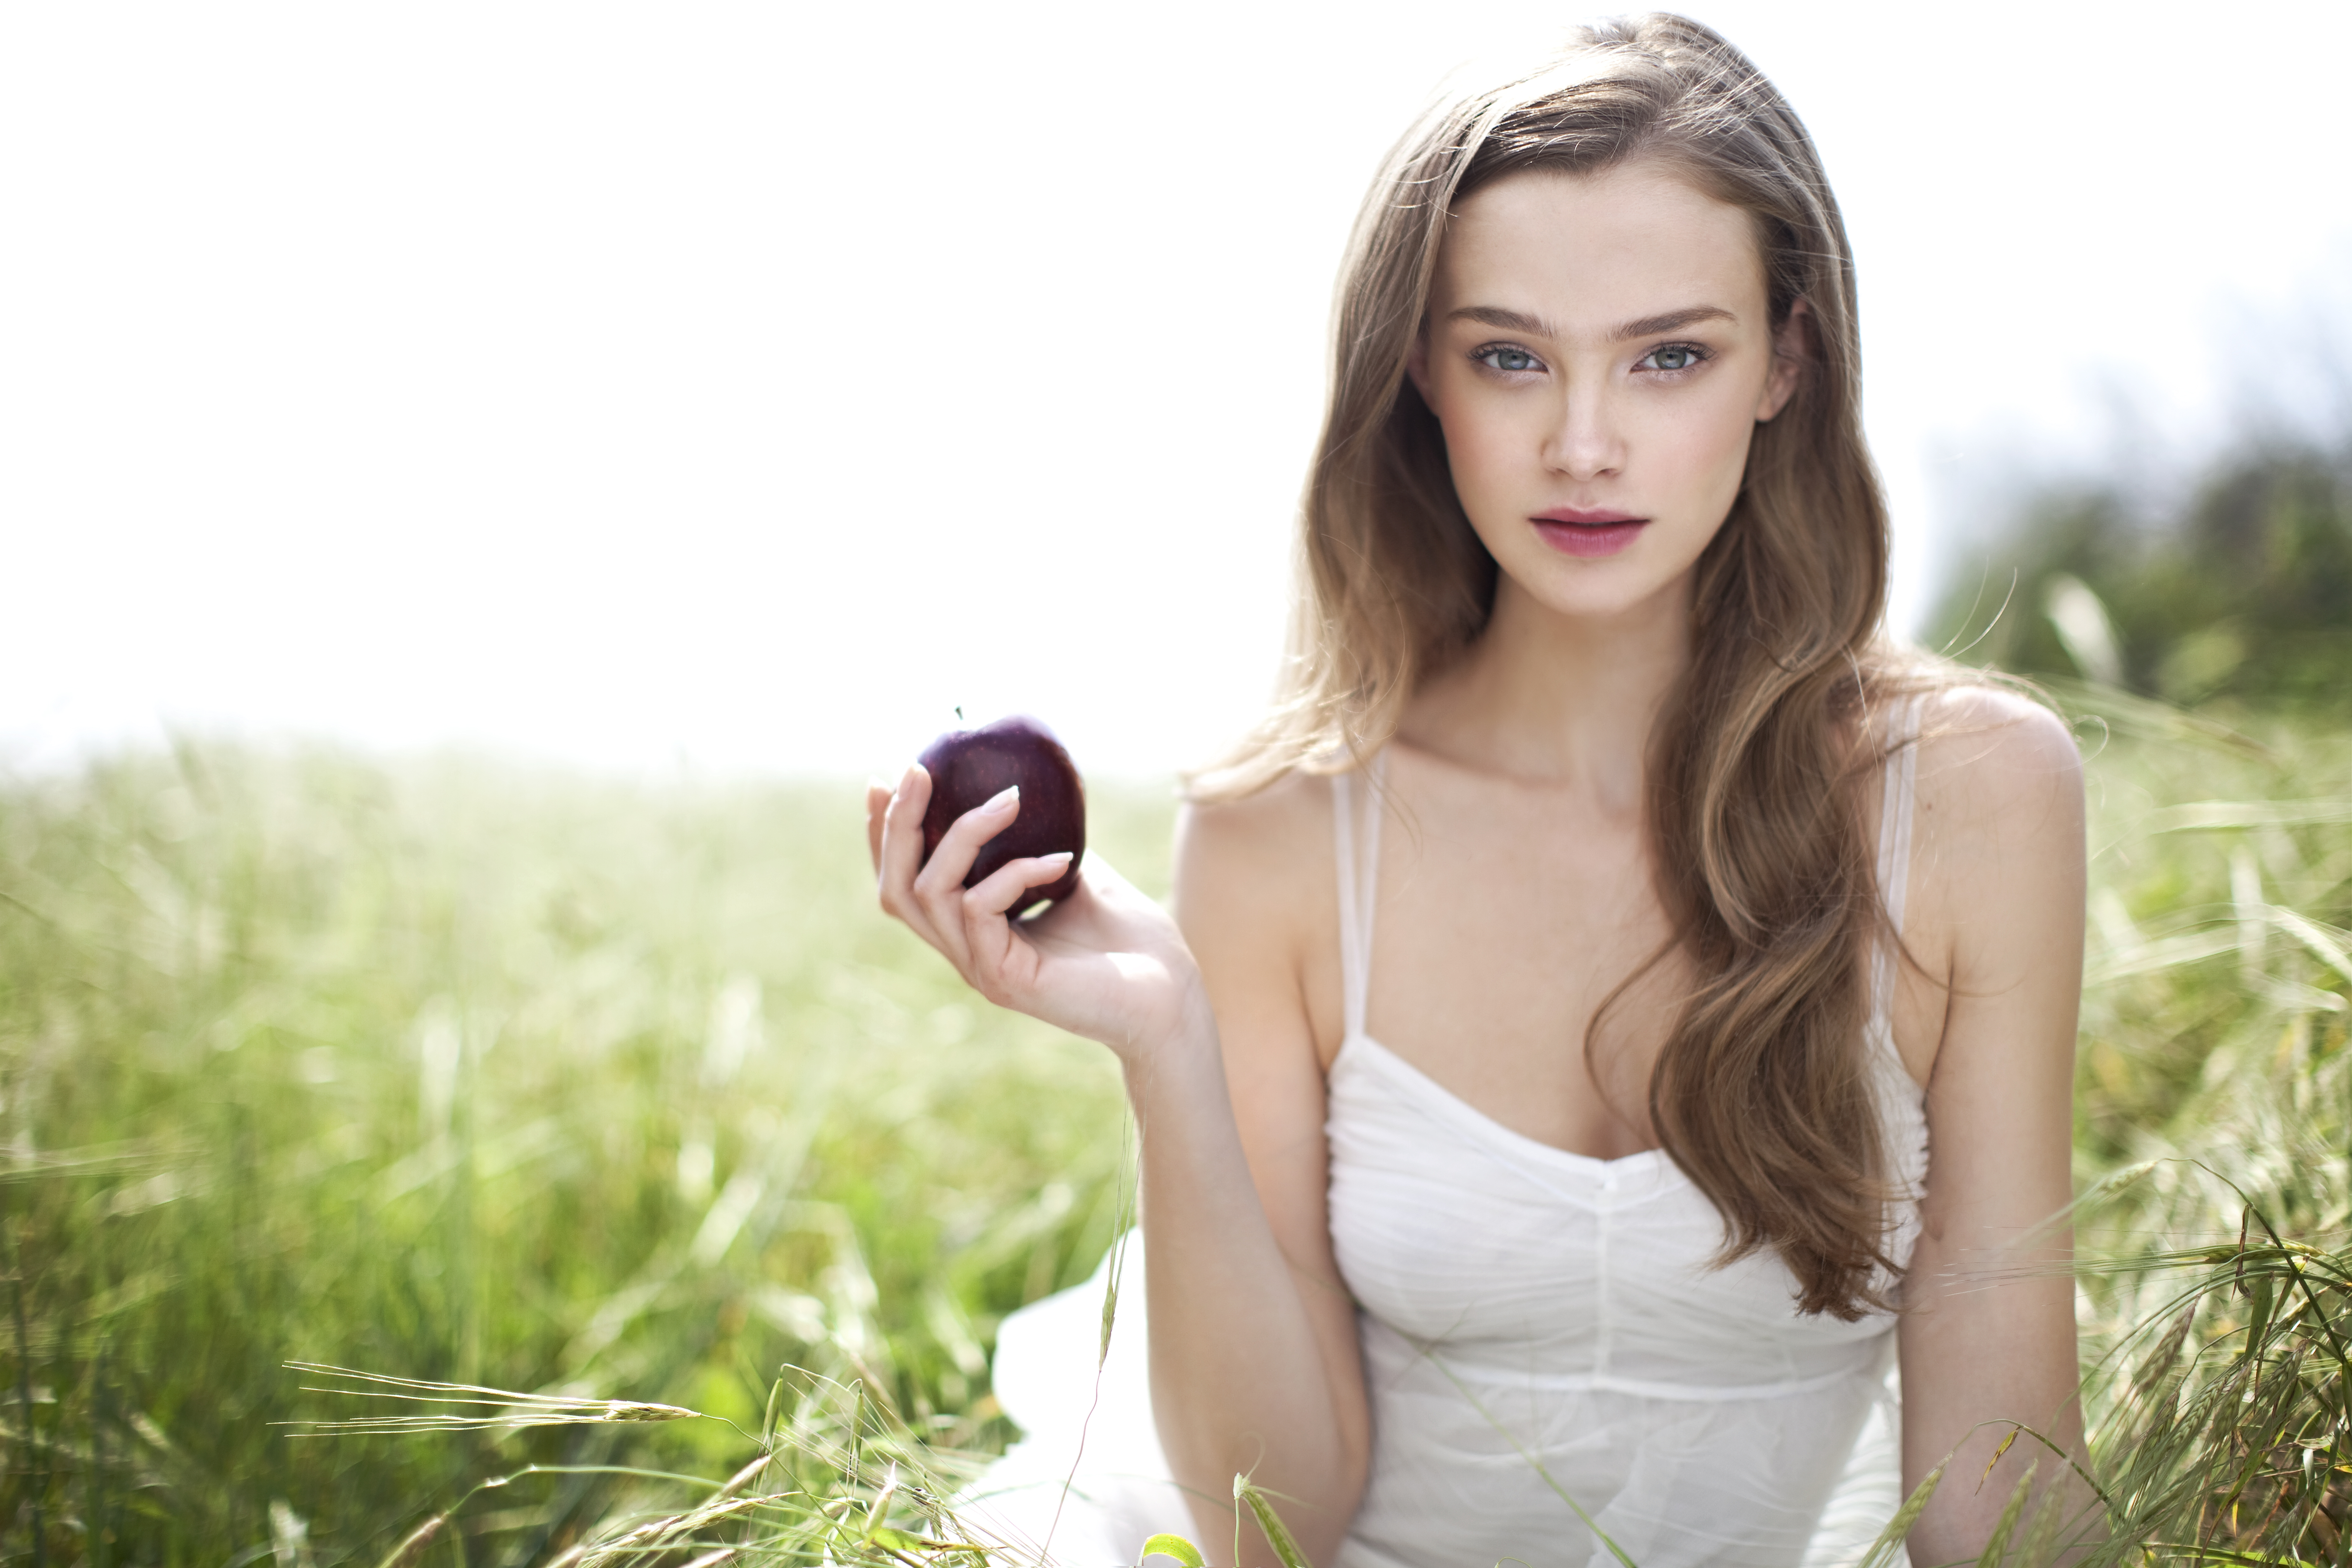 Adore cosmetics model with apple